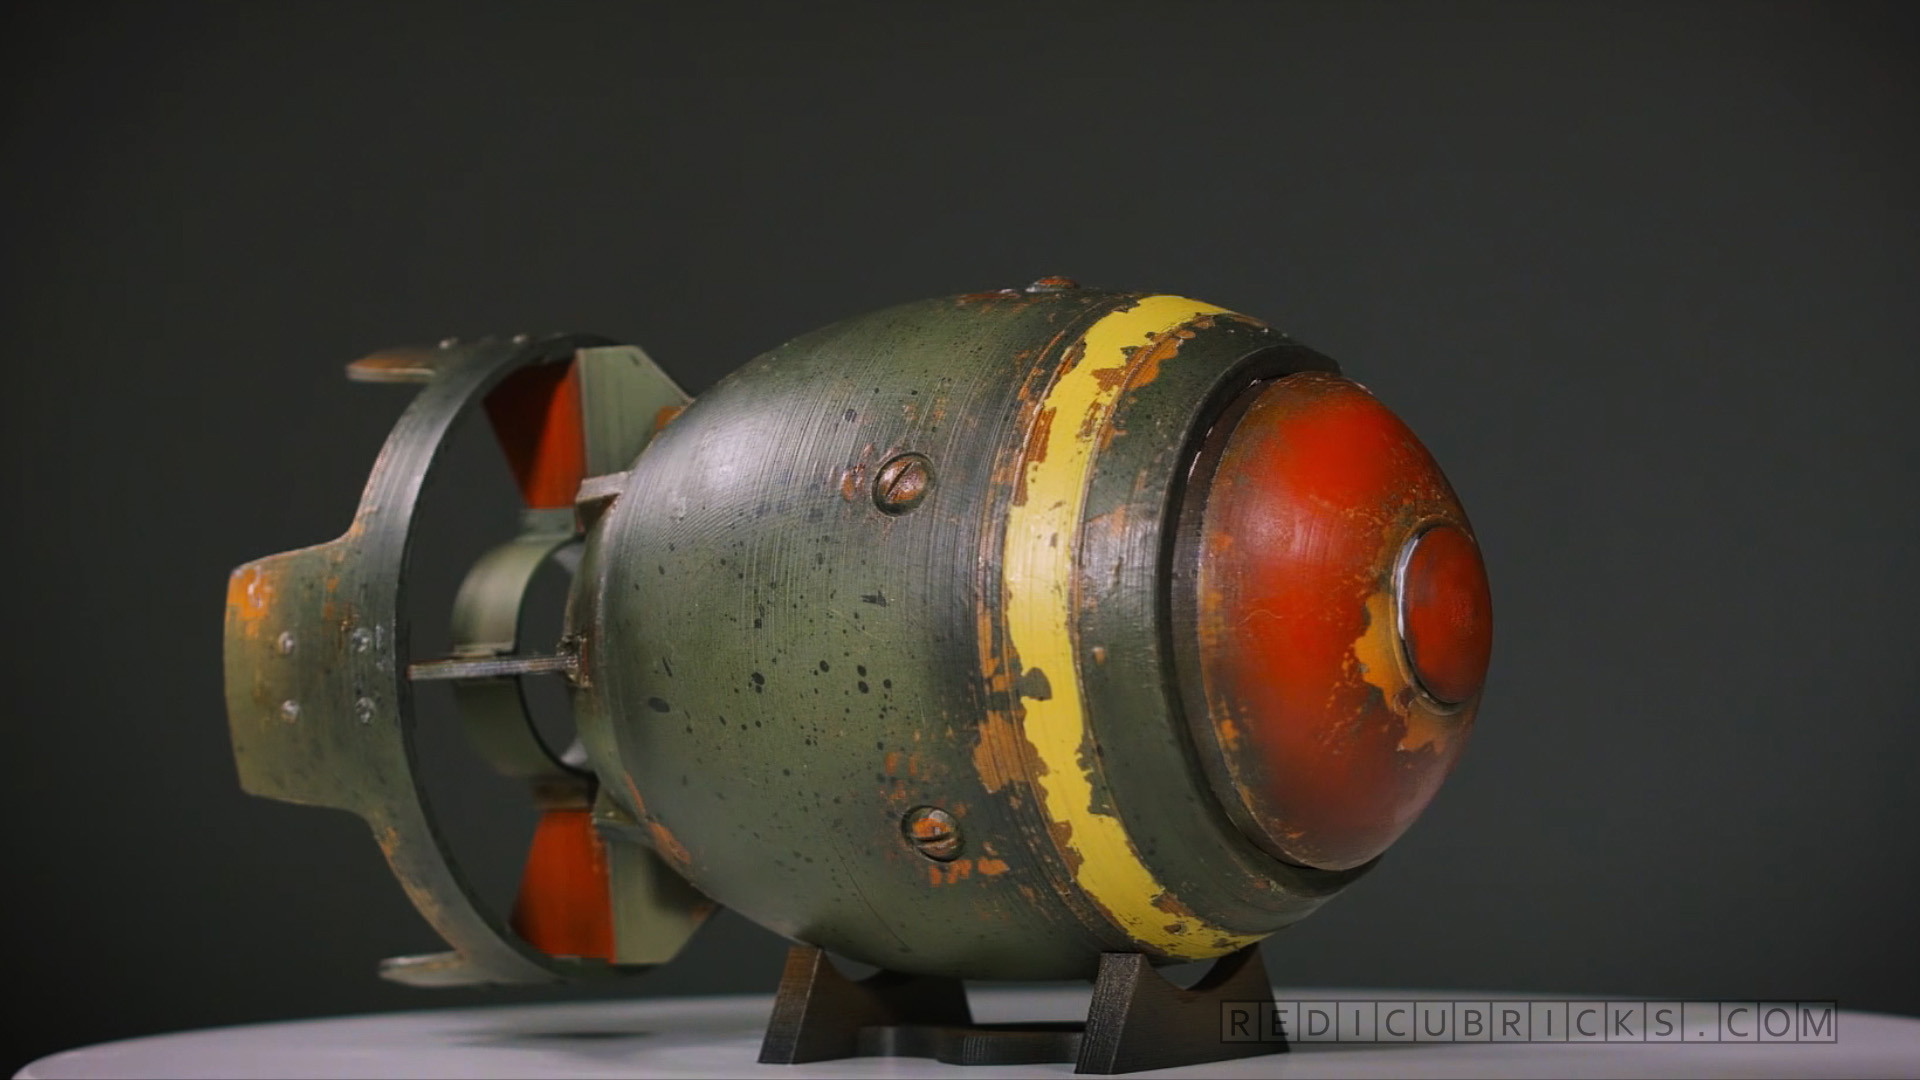 Fall Painting Wallpapers 3d Printed Fallout 4 Mini Nuke Cross Section